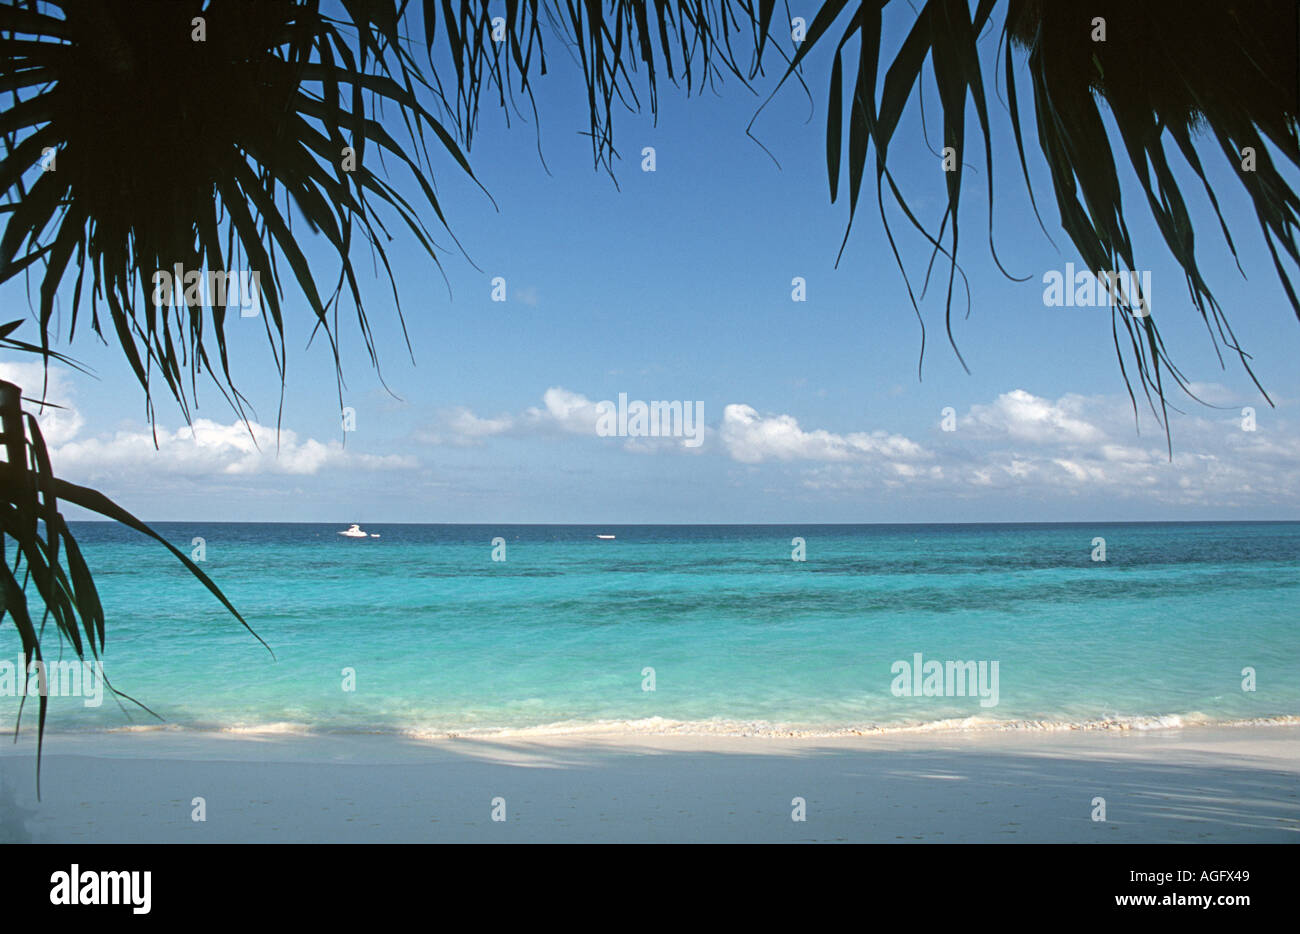 Palm framed scenic of the turquoise waters off Nungwi Unguja Zanzibar Tanzania East Africa - Stock Image